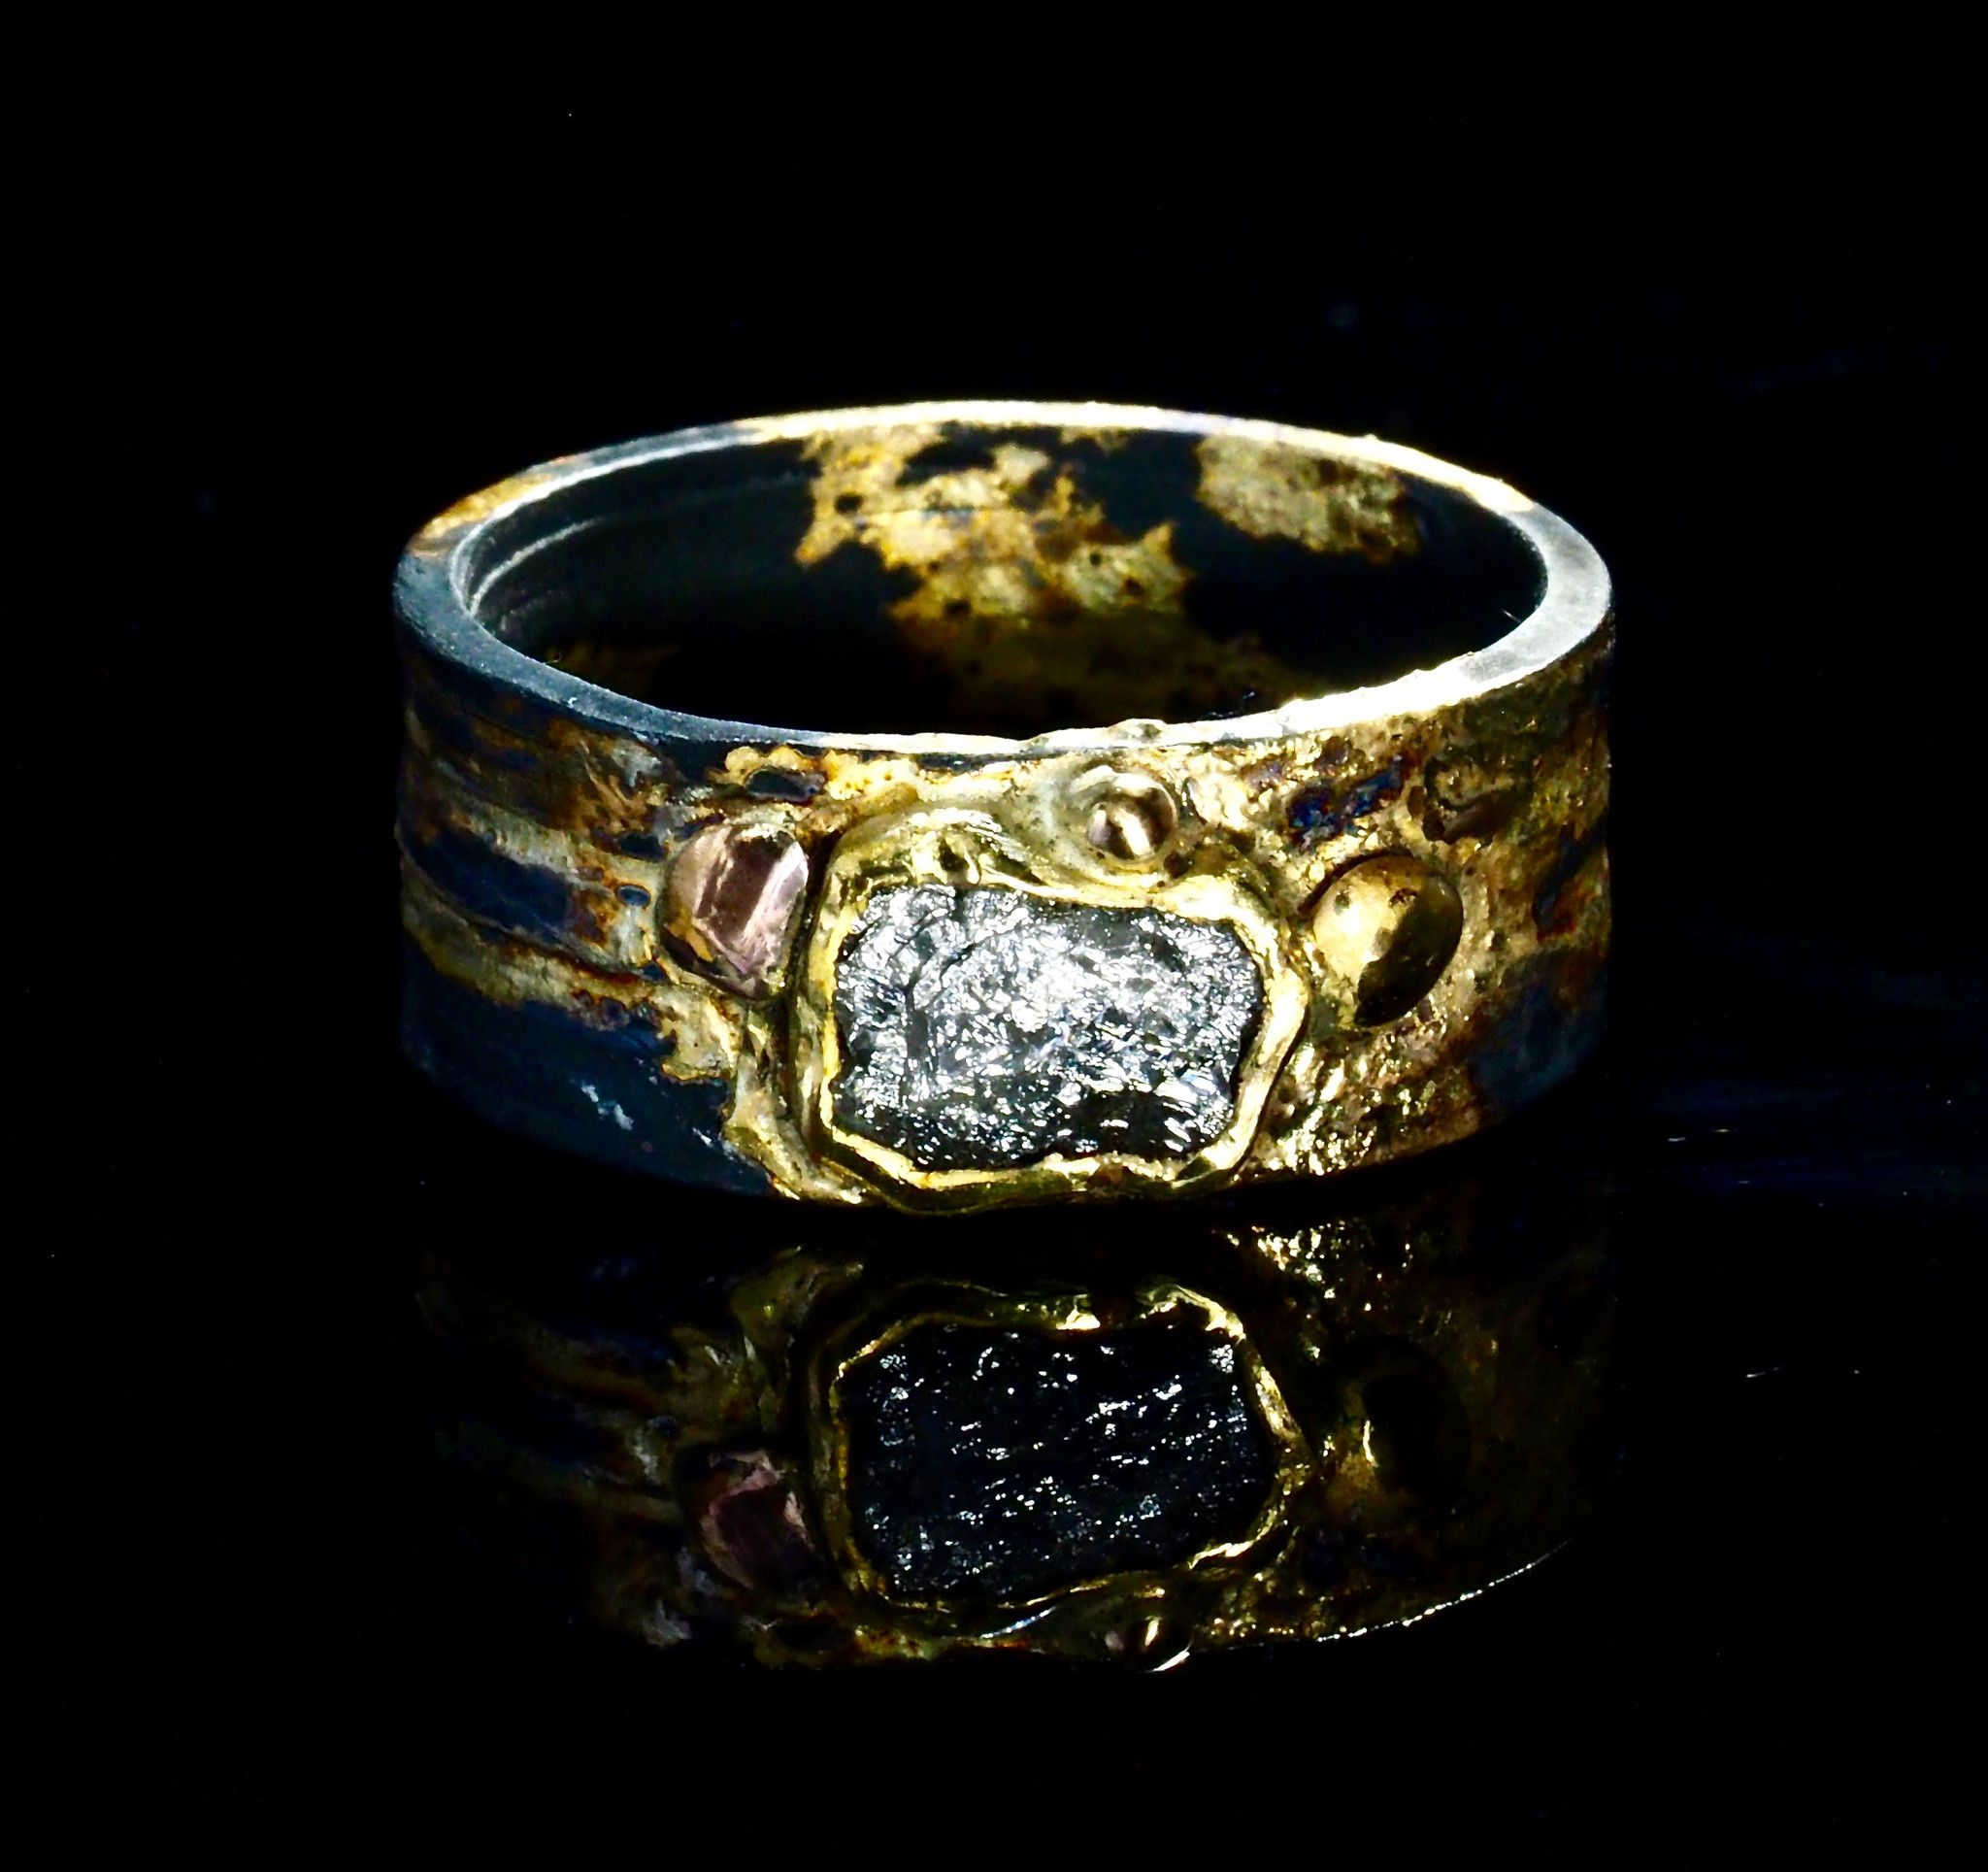 portland design gold vk macle recycled product in this engagement ethical rings designs raw love hammered forged ring diamond wedding yellow uncut